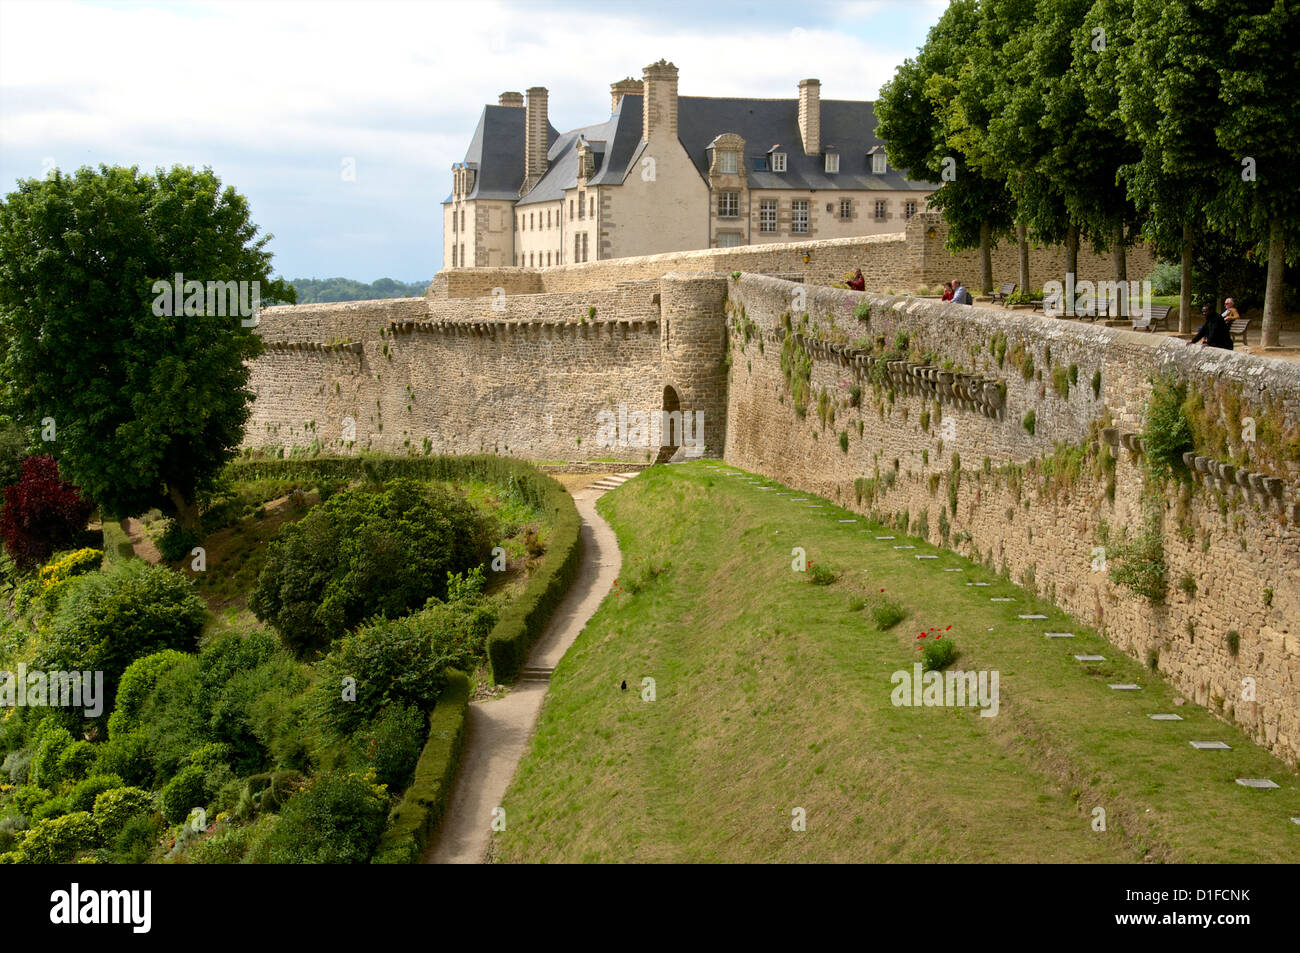 Town ramparts dating from the 13th 15th centuries, tower and English Garden, Old Town, Dinan, Brittany, Cotes d'Armor, - Stock Image